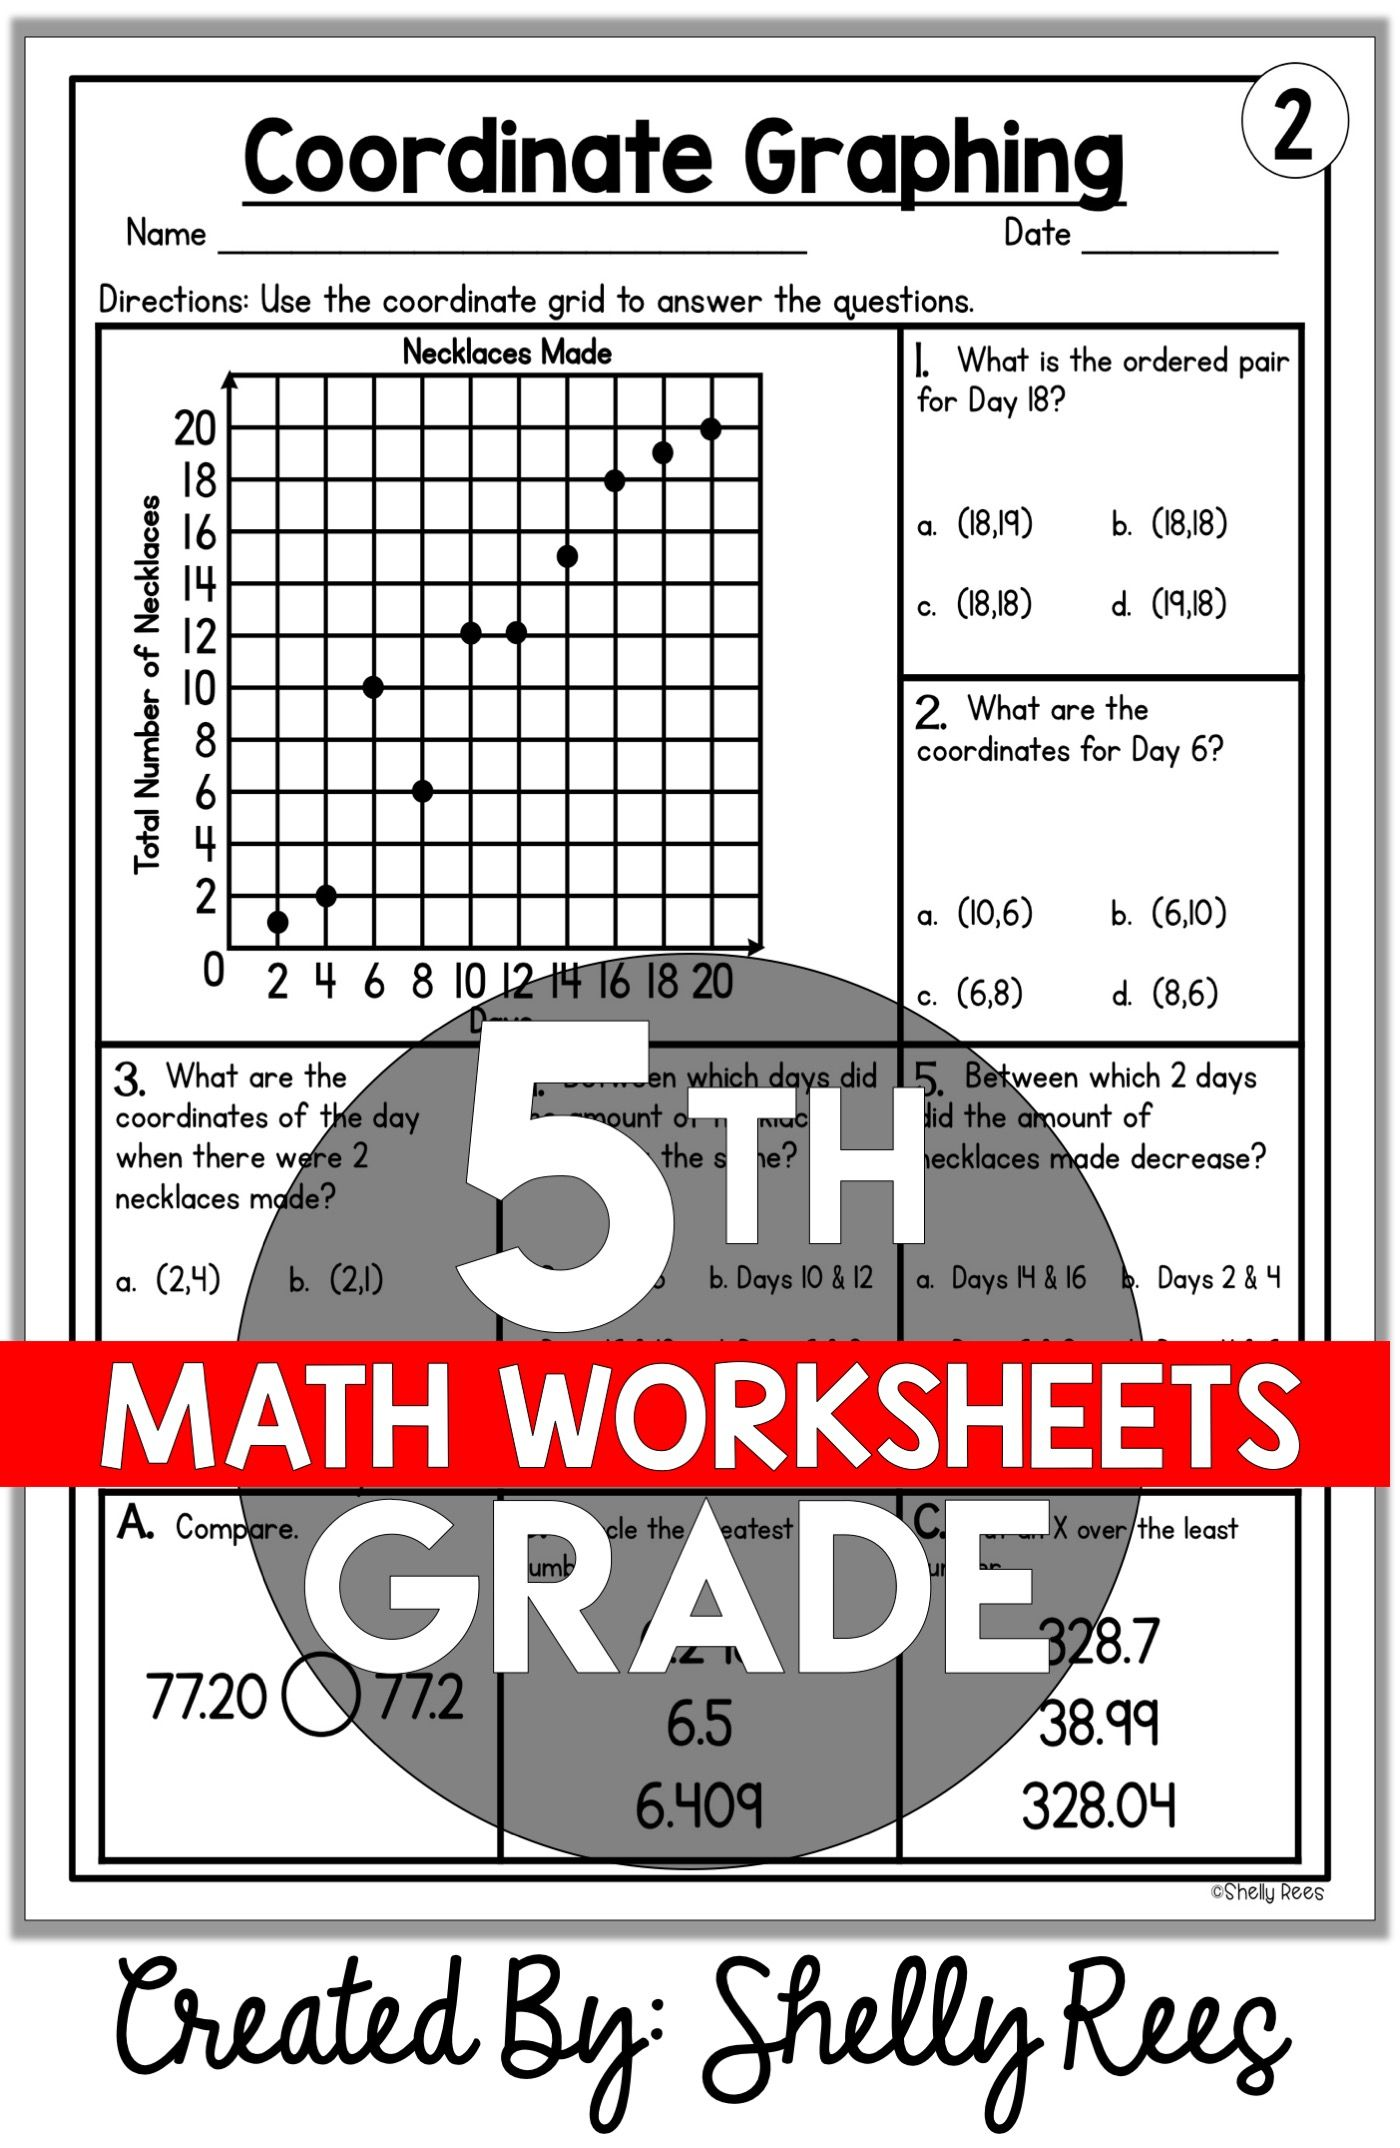 5th Grade Math Worksheets Free and Printable - Appletastic Learning   Math  review worksheets [ 2148 x 1400 Pixel ]